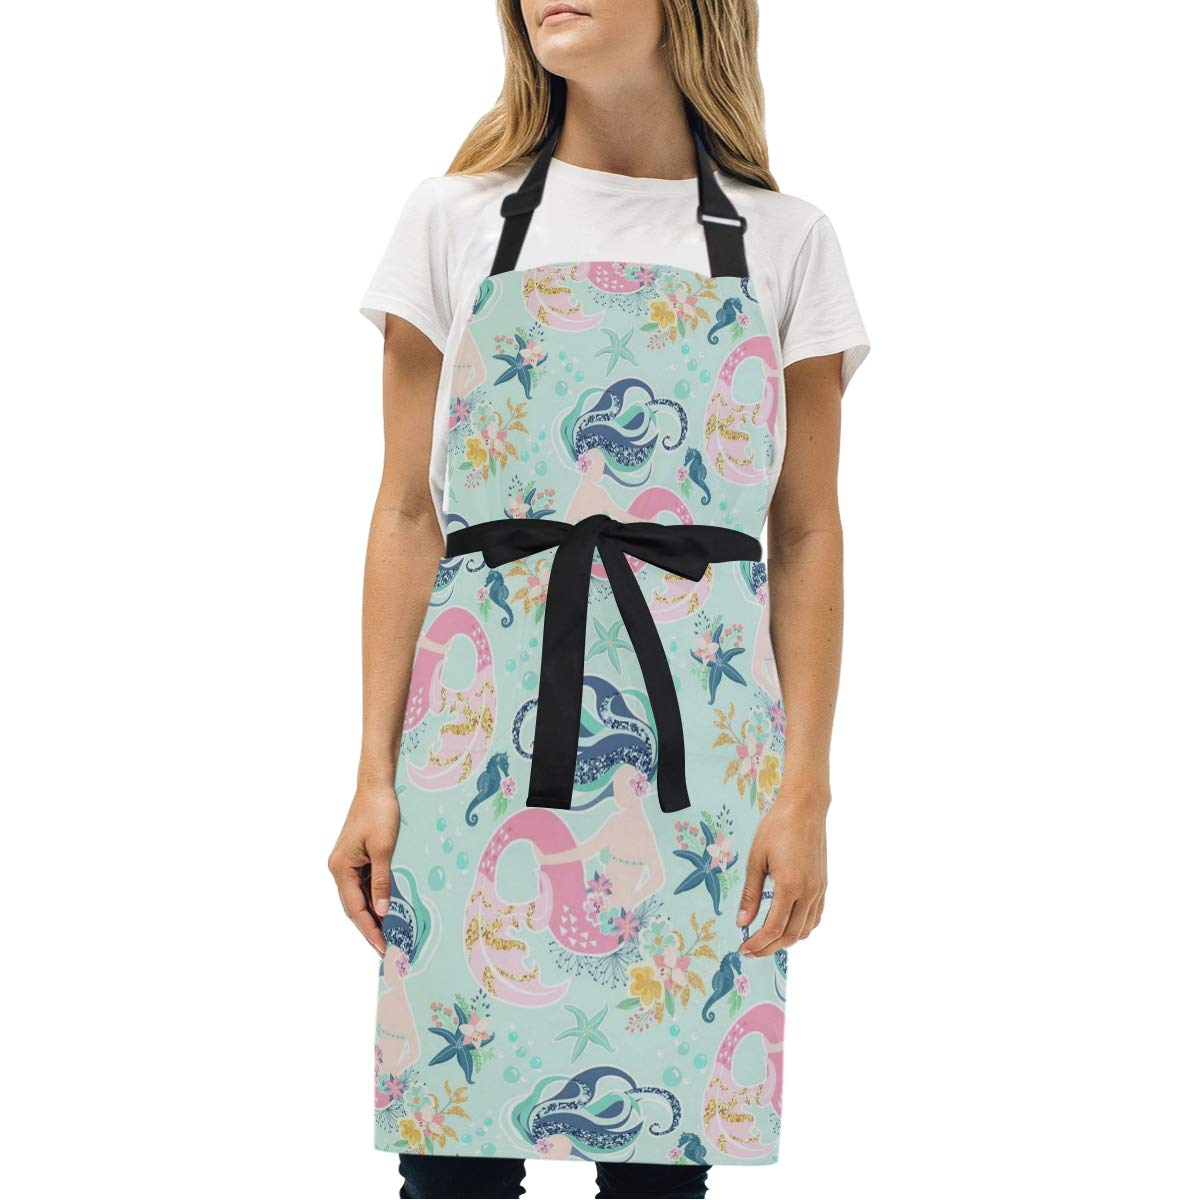 Best Mermaid Aprons For The Kitchen Reviews in 2020 1